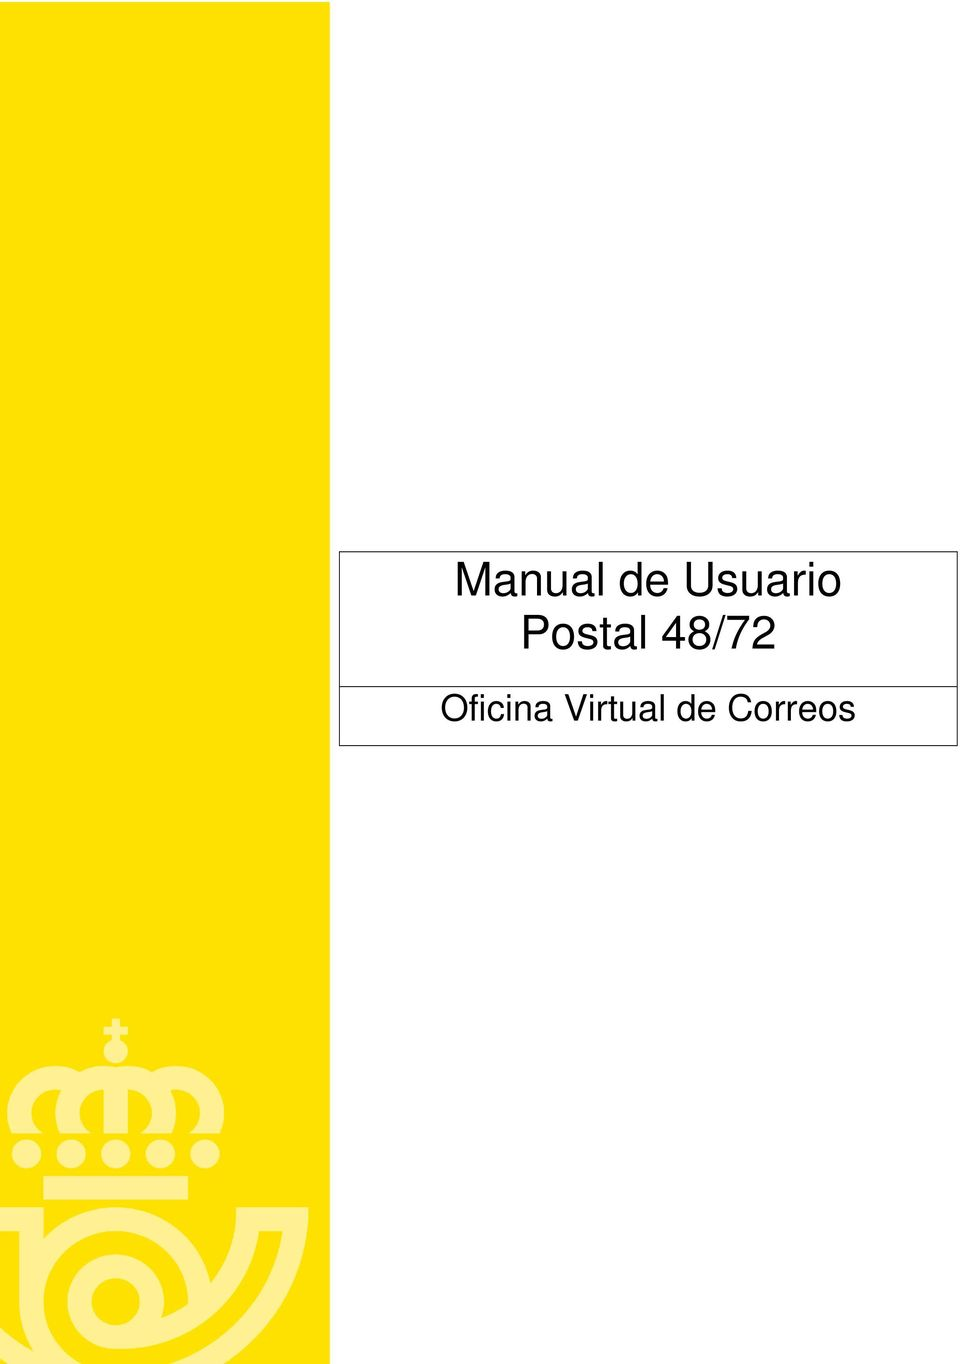 Oficina Virtual Correos Of Manual De Usuario Postal 48 72 Oficina Virtual De Correos